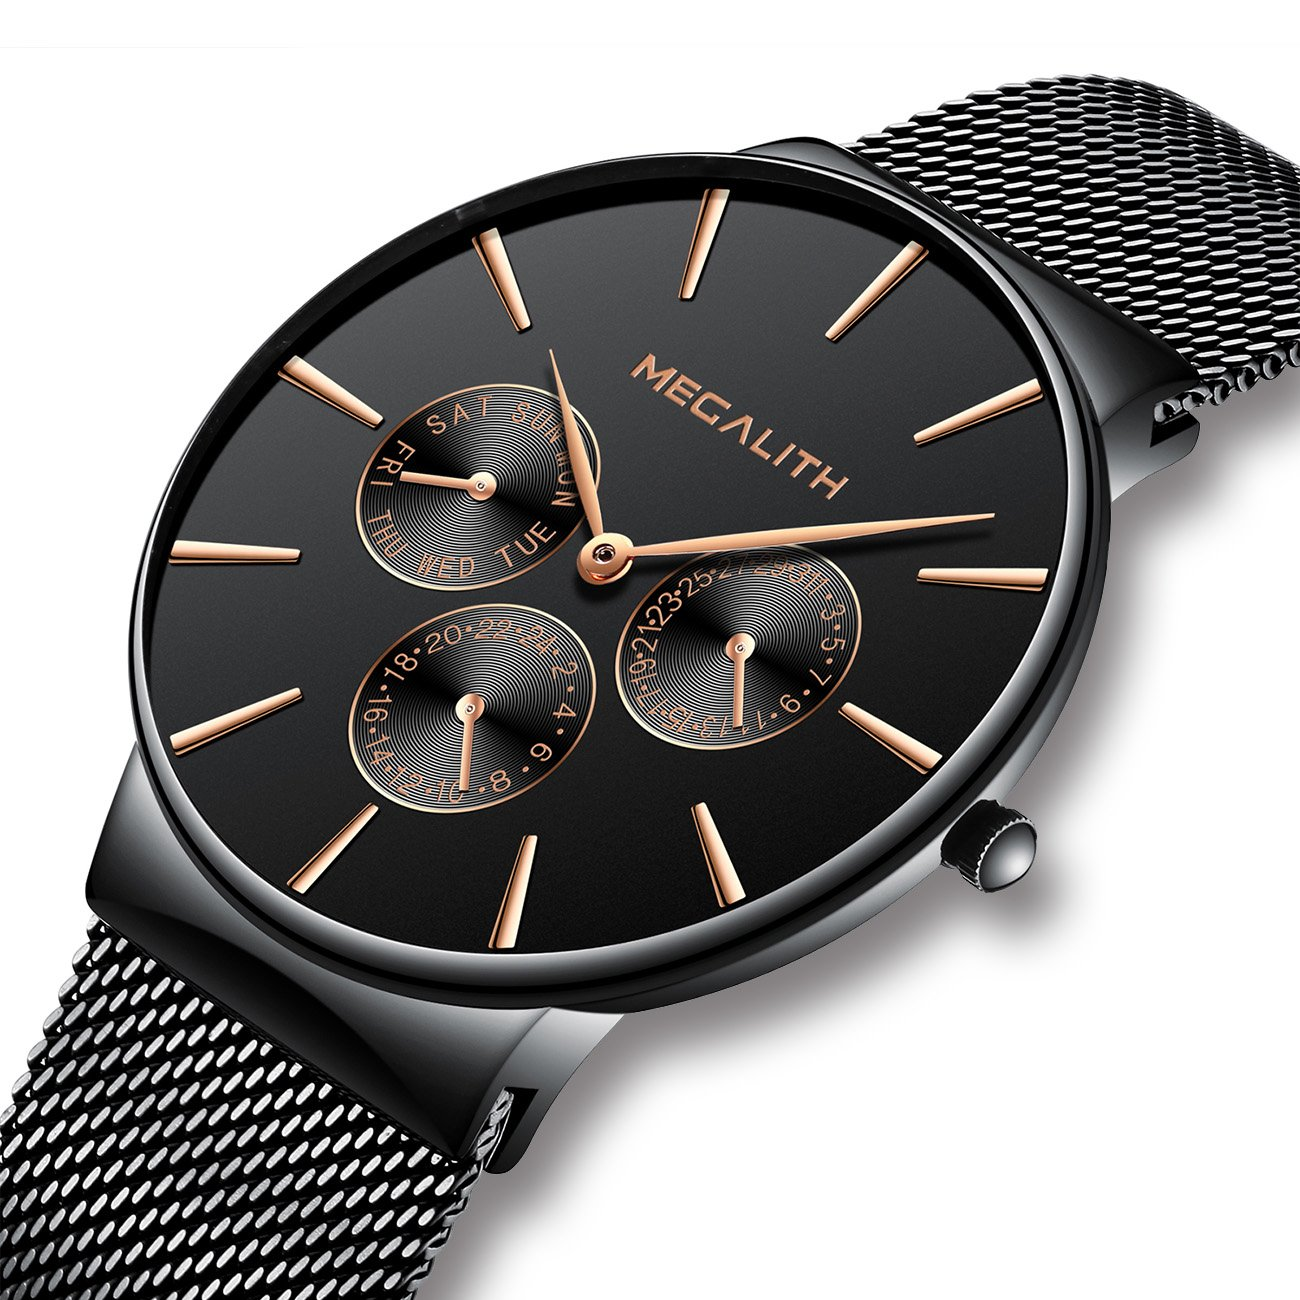 f7e6f9a9b65 Mens Watches Men Waterproof Sport Luxury Thin Black Stainless Steel Mesh  Wrist Watch Business Fashion Dress Day Date Analogue Watches for Men   Amazon.co.uk  ...